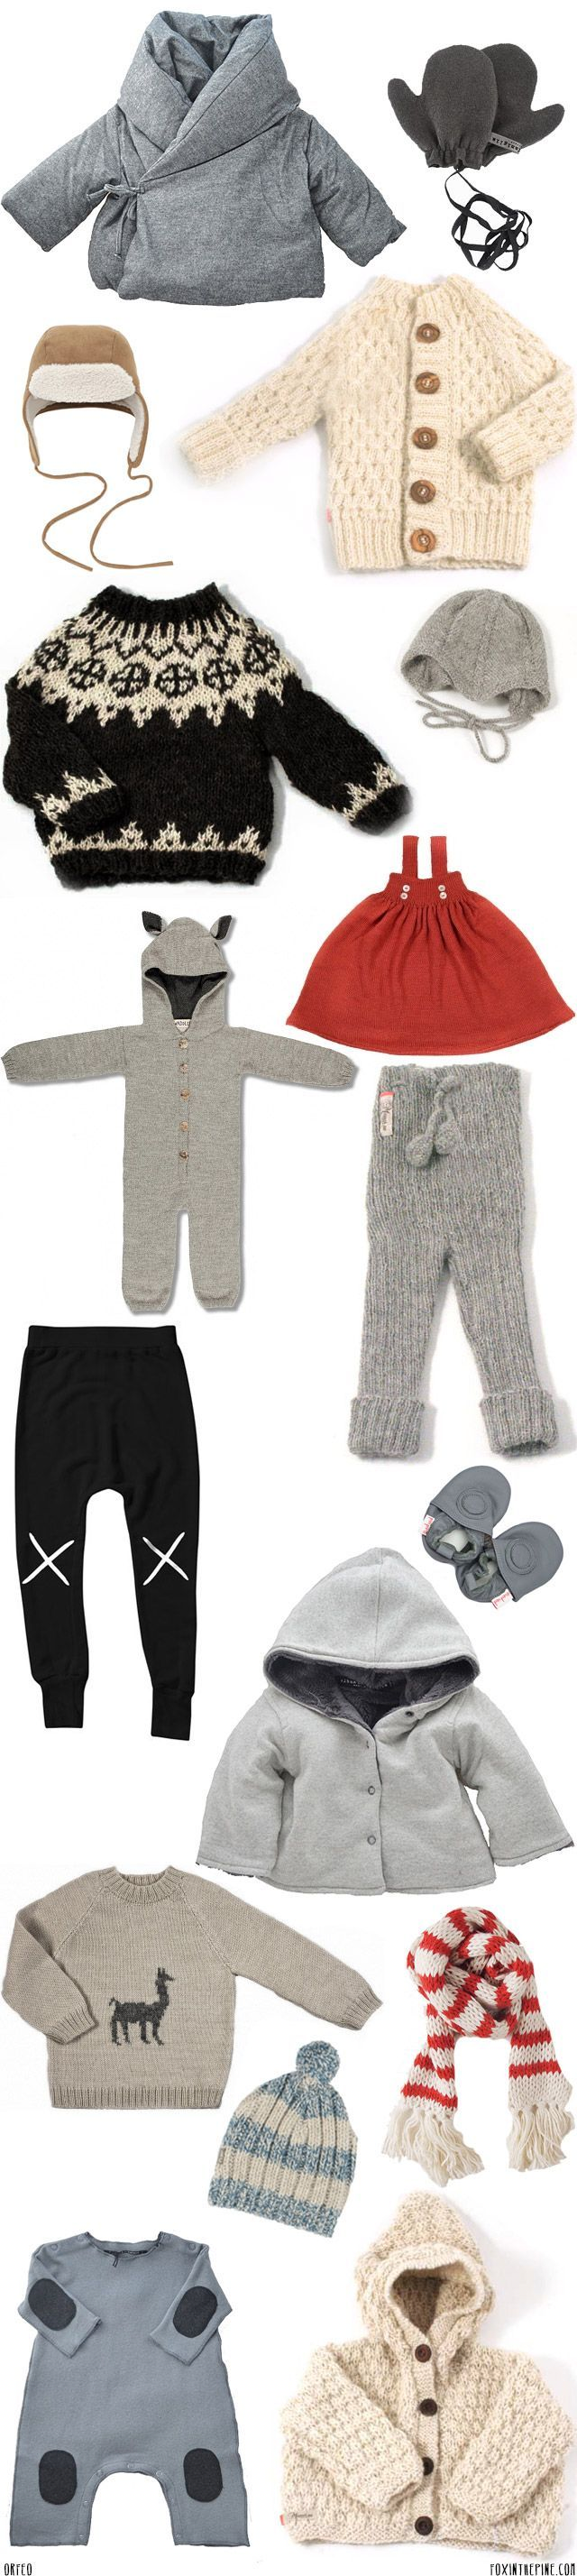 Orfeo kids clothing line featured on FOXINTHEPINE.COM